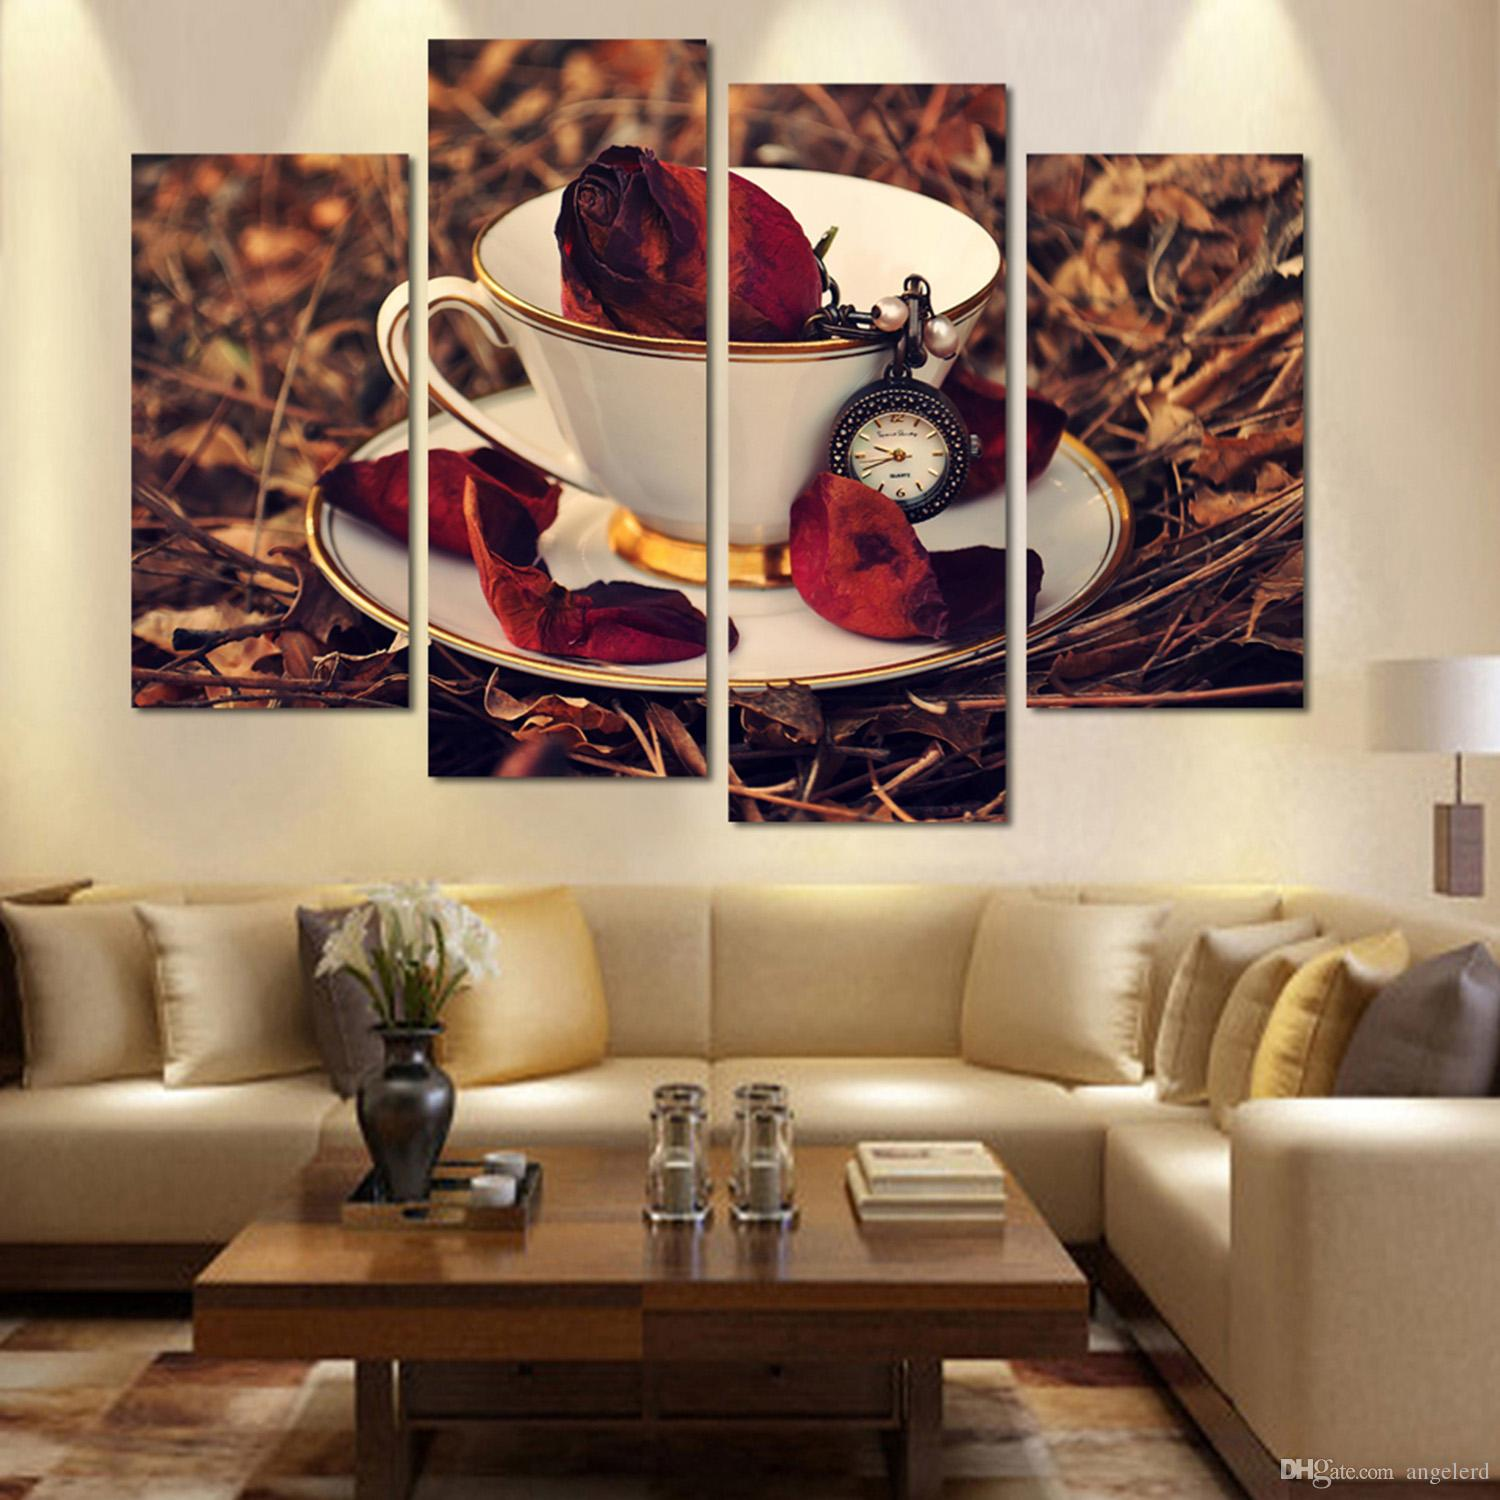 4 Piece Wall Art best hot kitchen canvas wall art modern nostalgic coffee flower